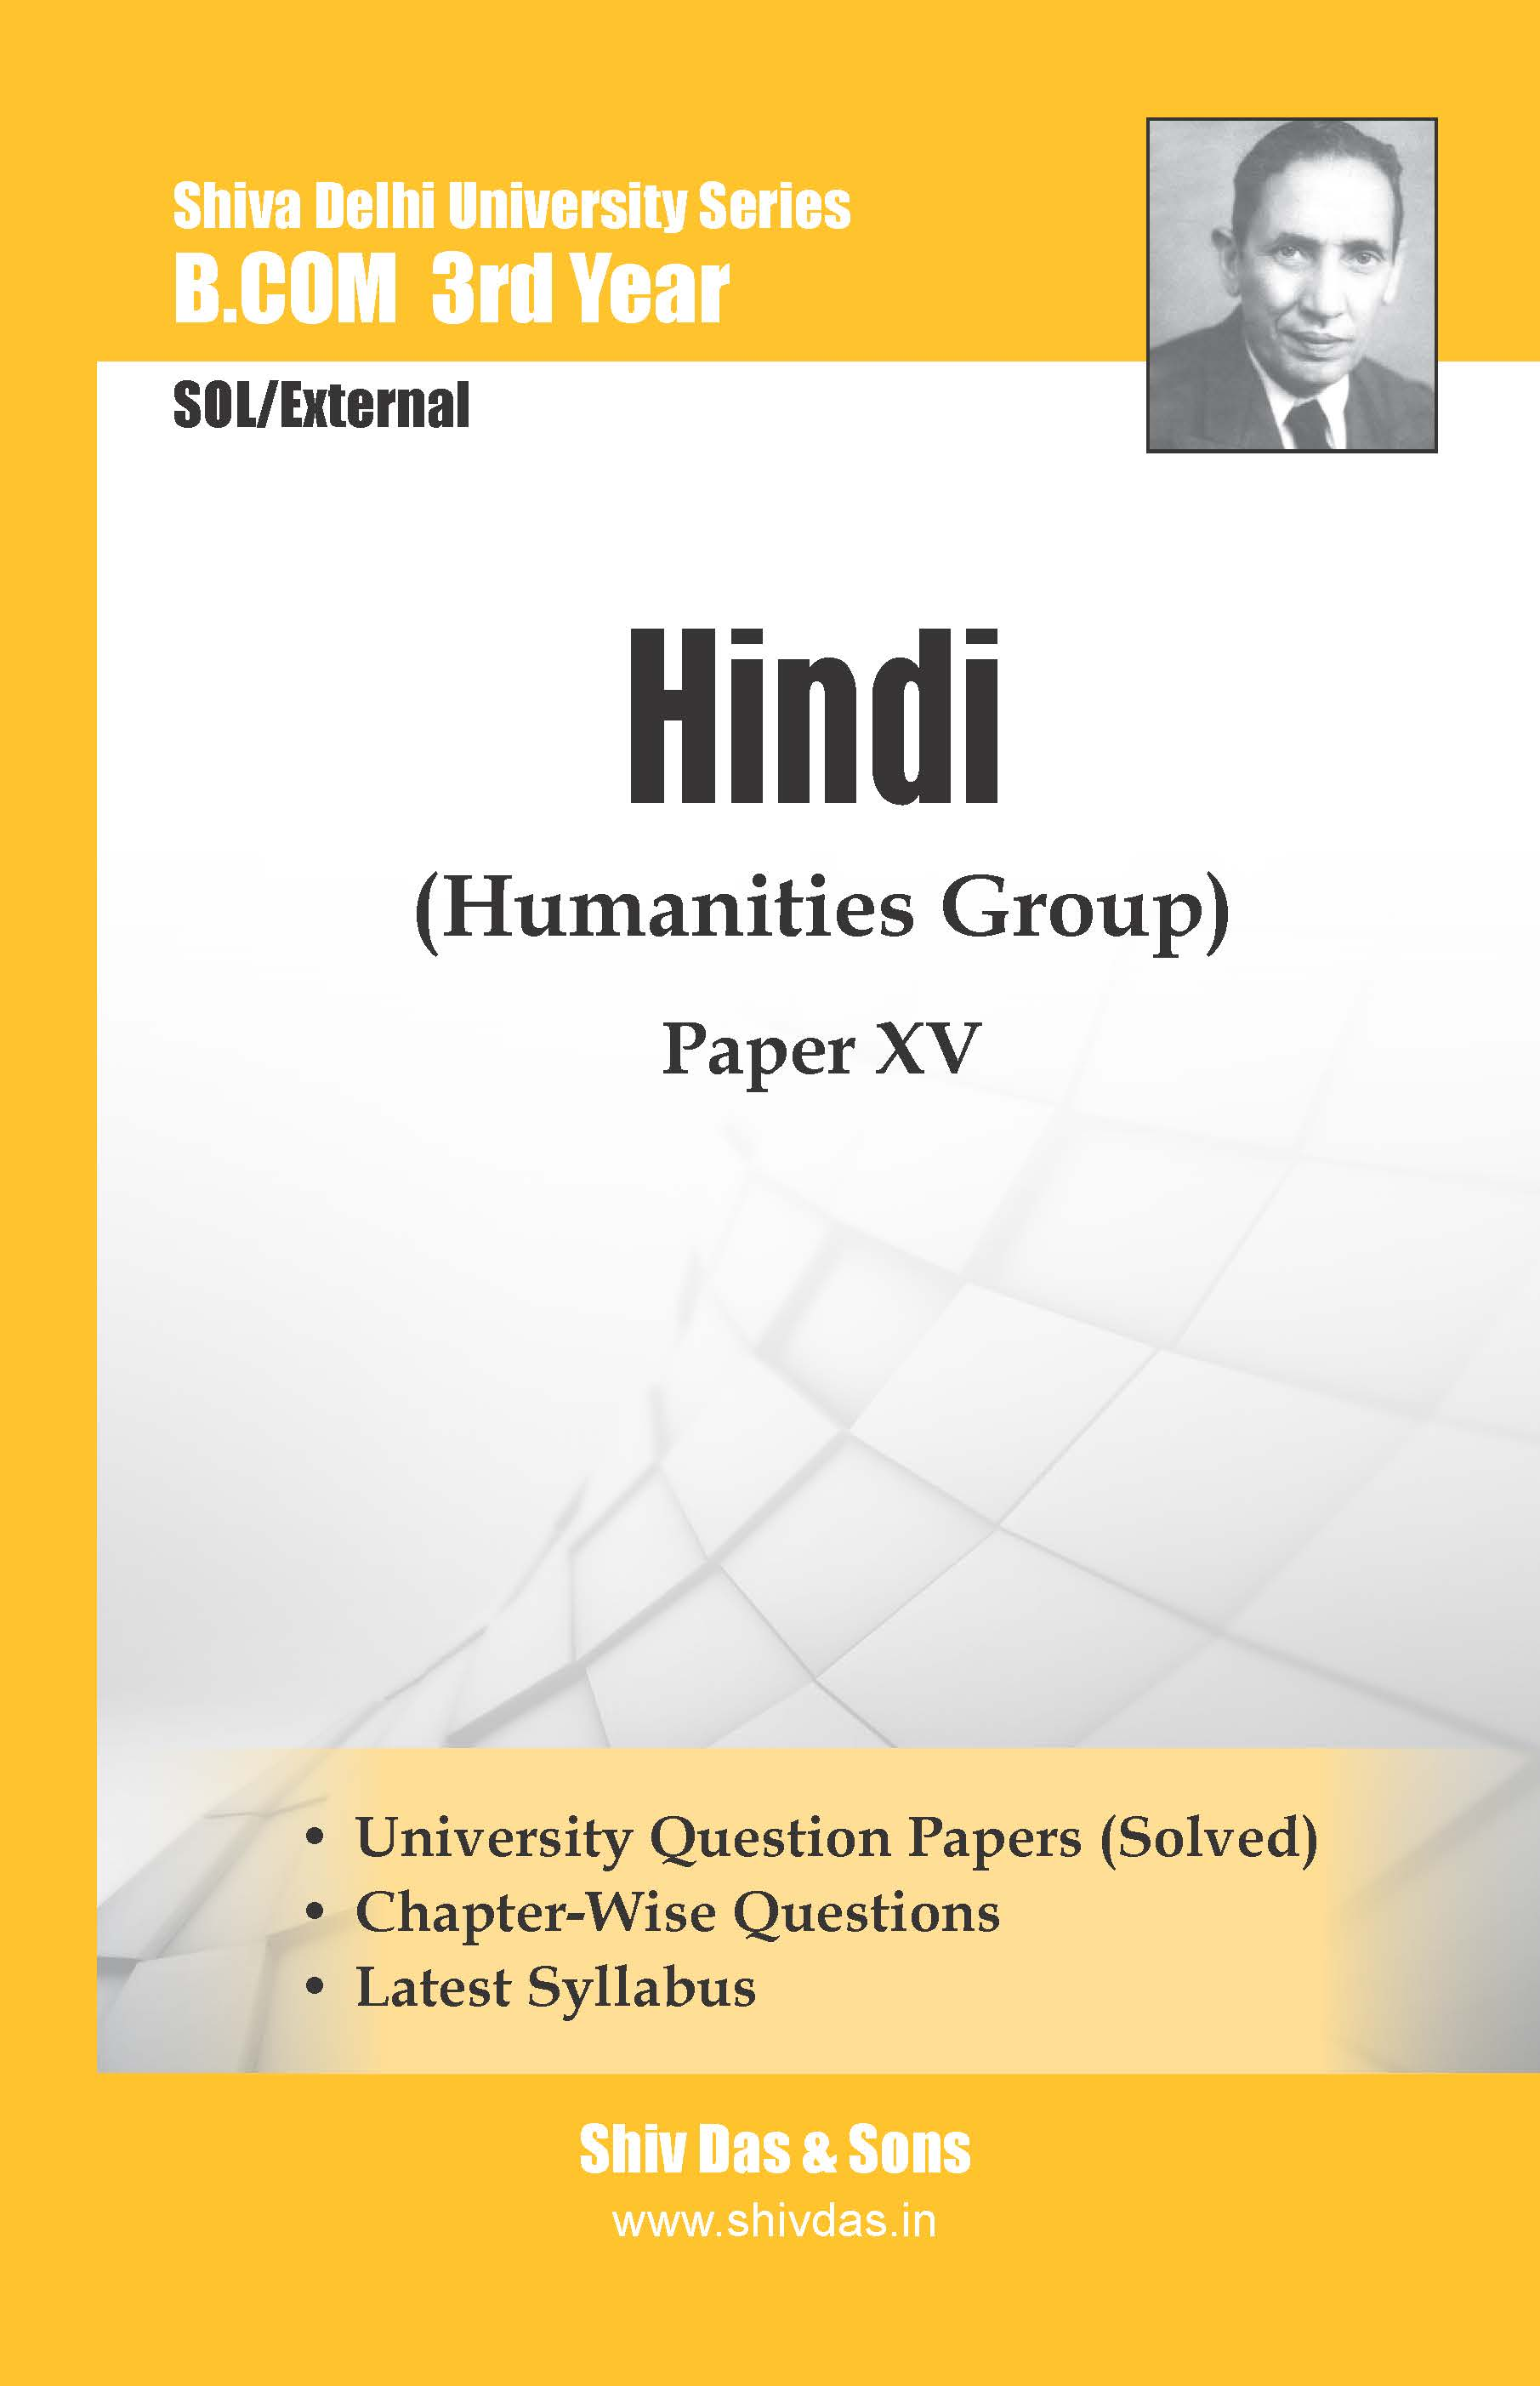 B.Com 3rd Year SOL/External Hindi Shiv Das-Delhi University Series